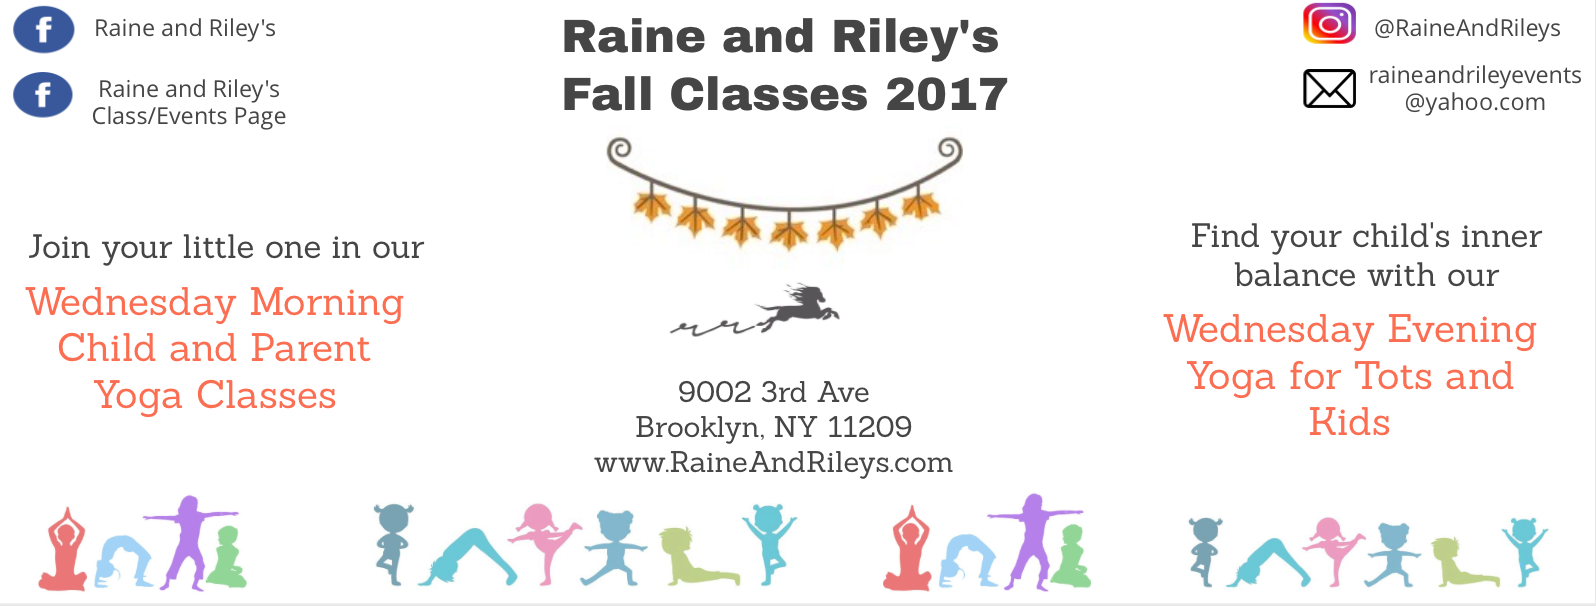 Raine and Riley's kids' yoga classes in Bay Ridge, Brooklyn